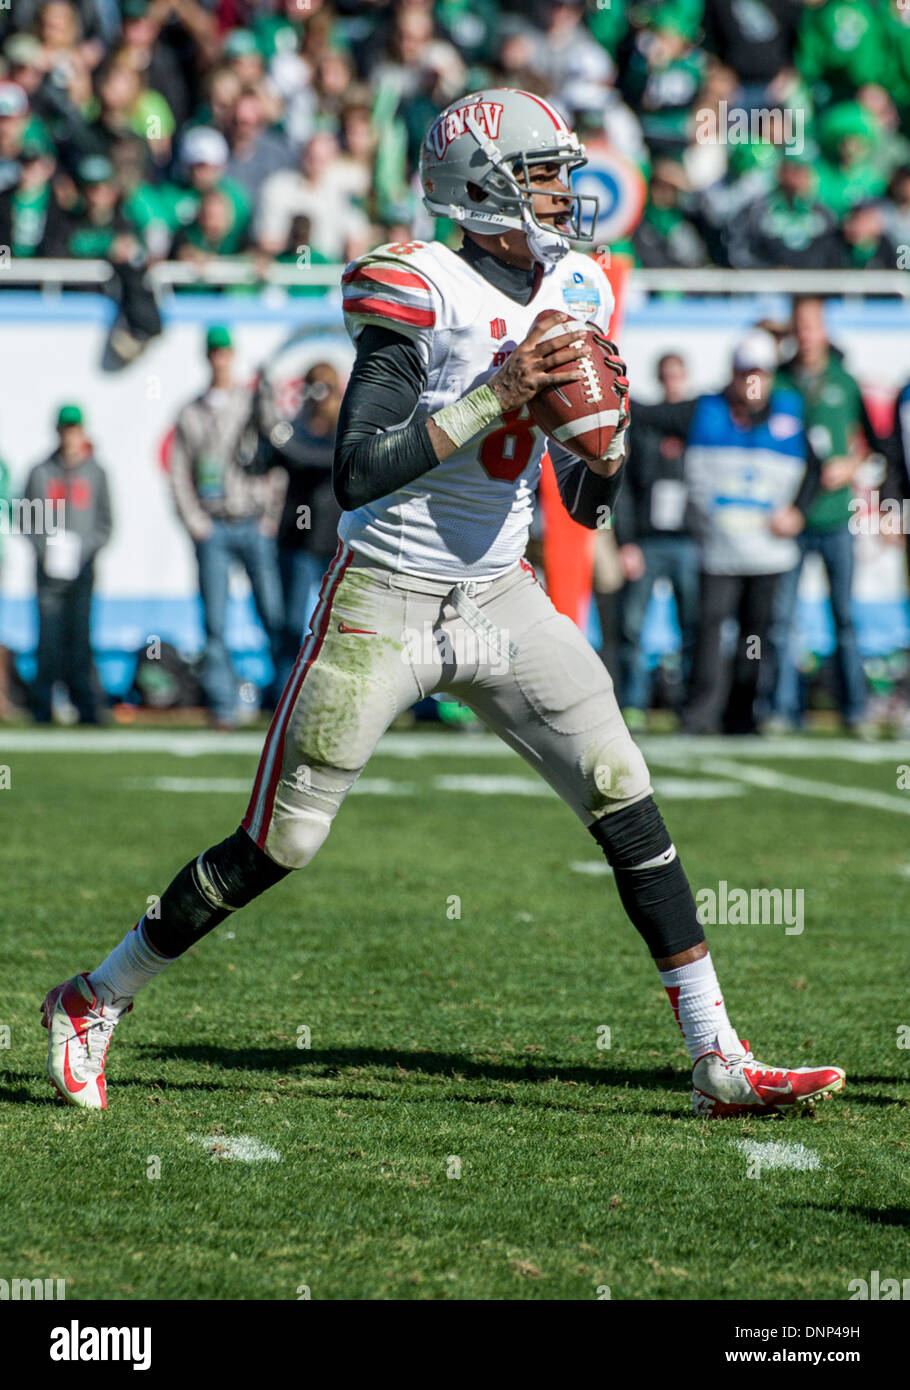 Dallas Texas Usa January 1st 2014 Unlv Rebels Quarterback Caleb Stock Photo Alamy